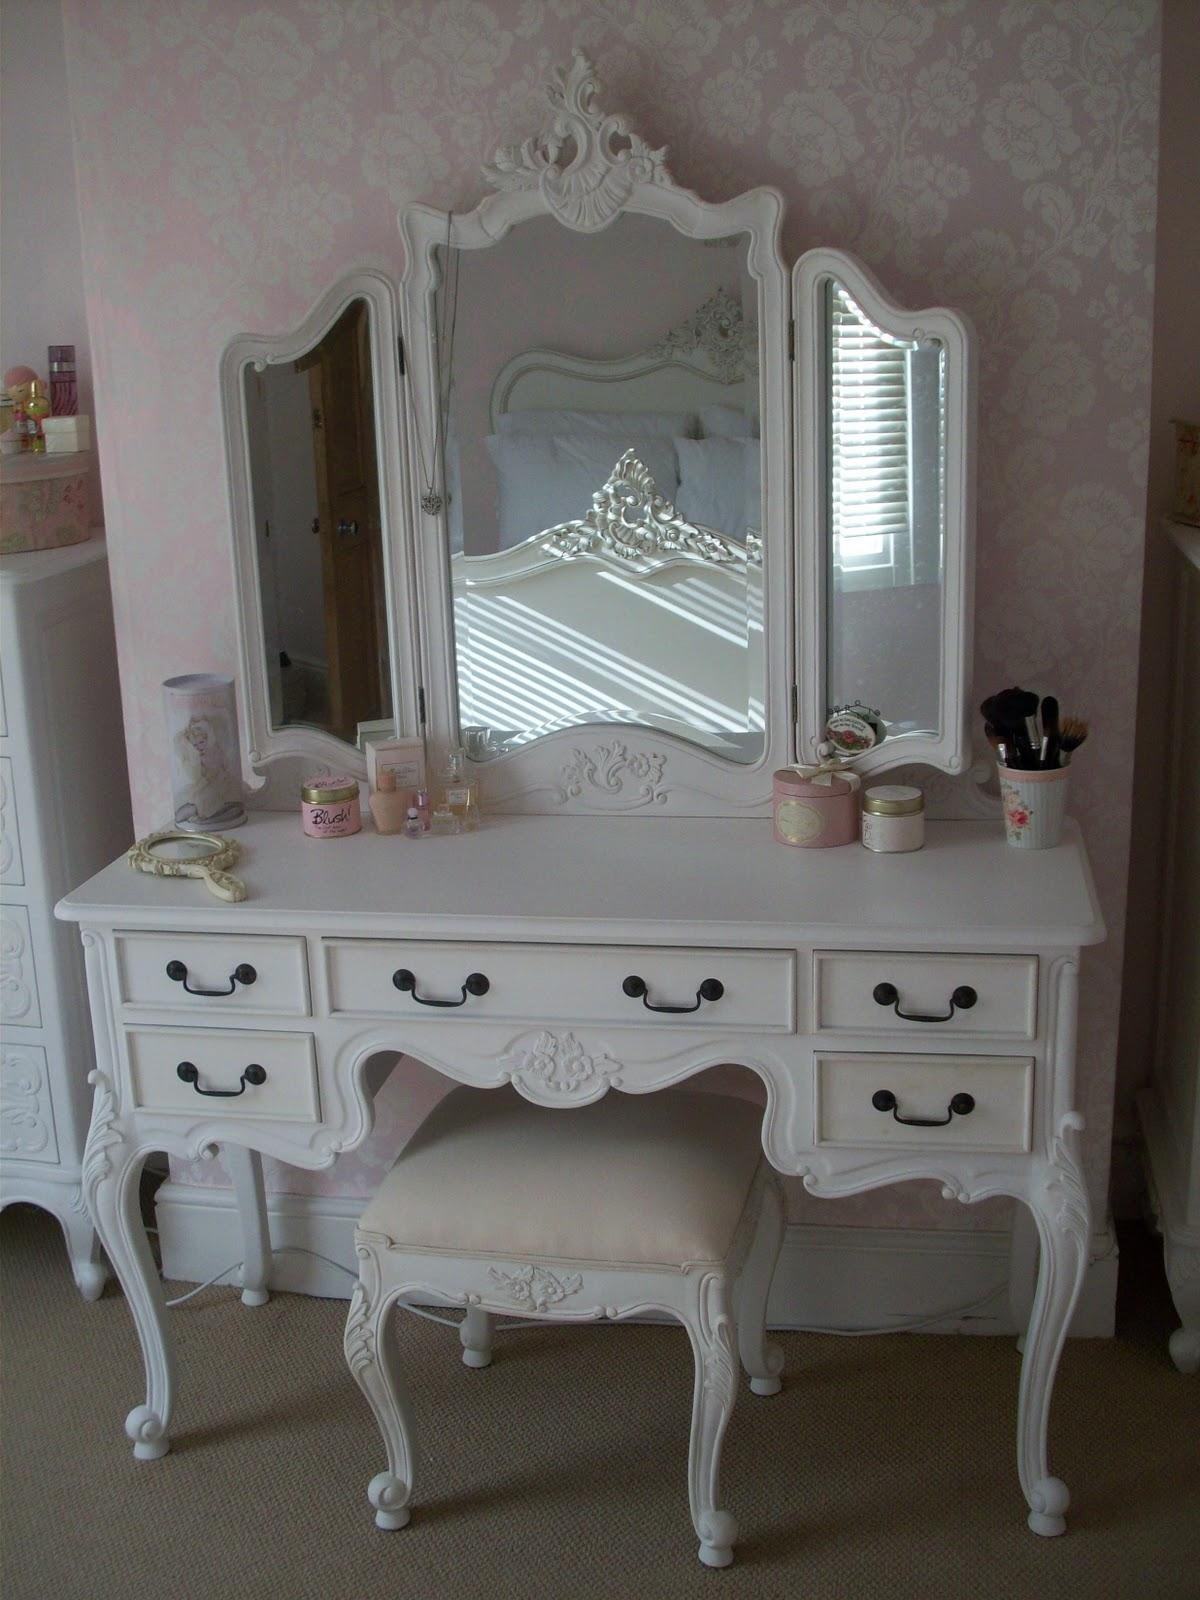 Antique Free Standing Dresser Mirror ~ Bestdressers 2017 With White Antique Mirrors (Image 1 of 20)